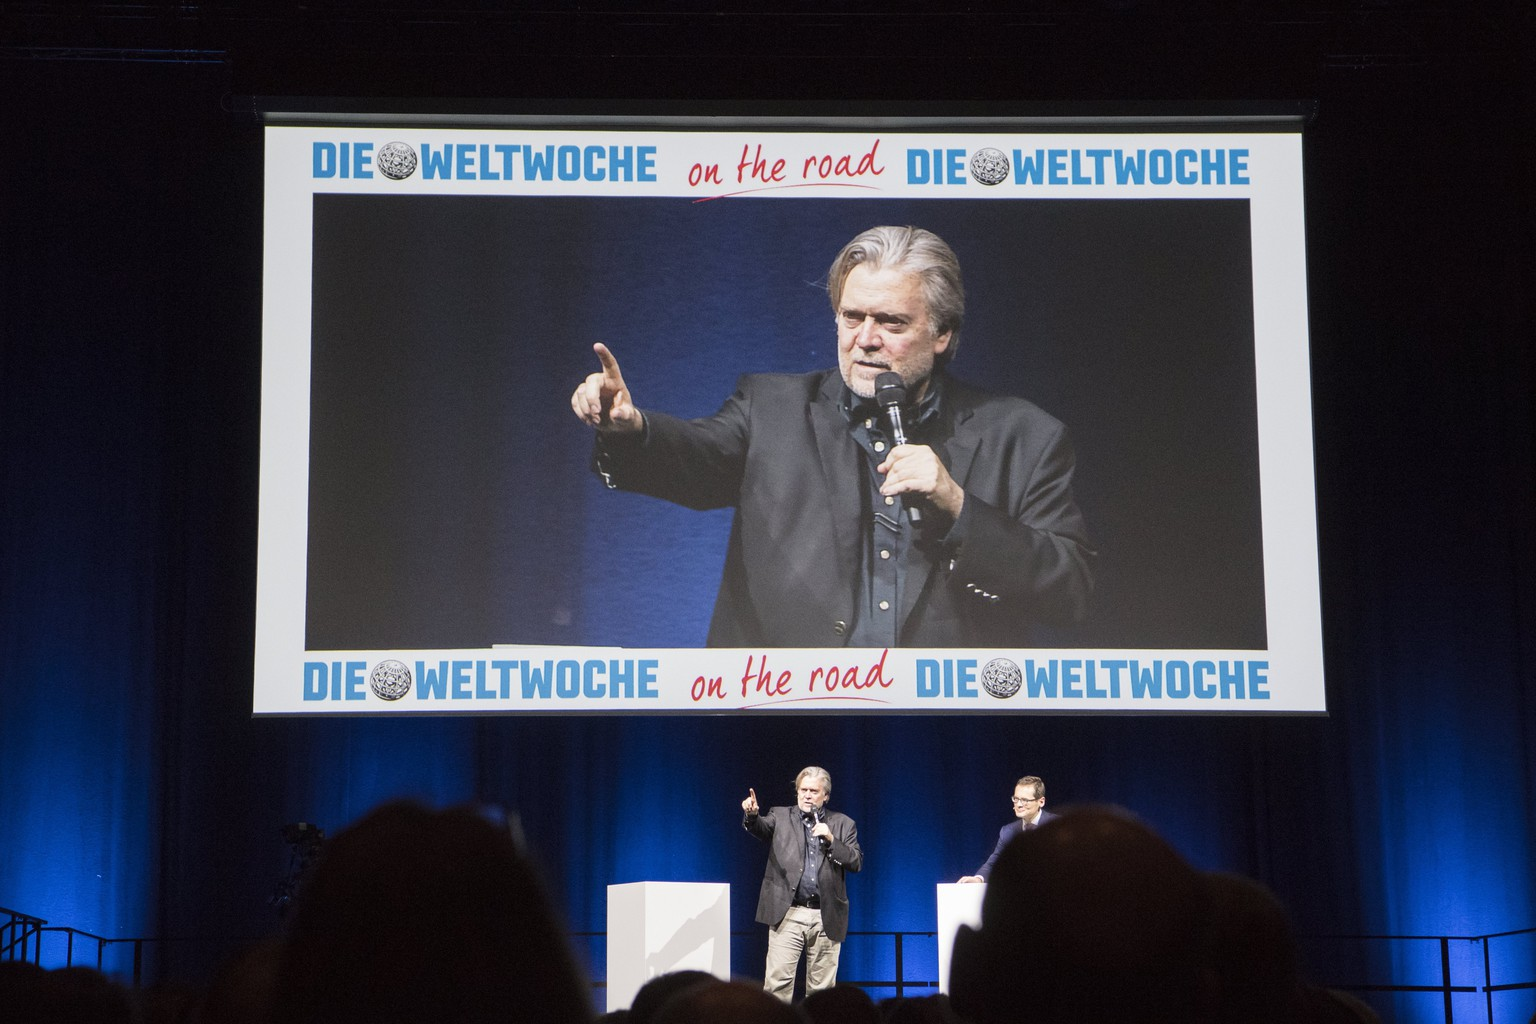 epa06585573 Former US White House strategist Steve Bannon speaks during the 'Weltwoche  (World week) on the road - Steve Bannon' event in Zurich, Switzerland, 06 March 2018. Reports state that Bannon will speak on his time in the White House and other political topics.  EPA/ENNIO LEANZA